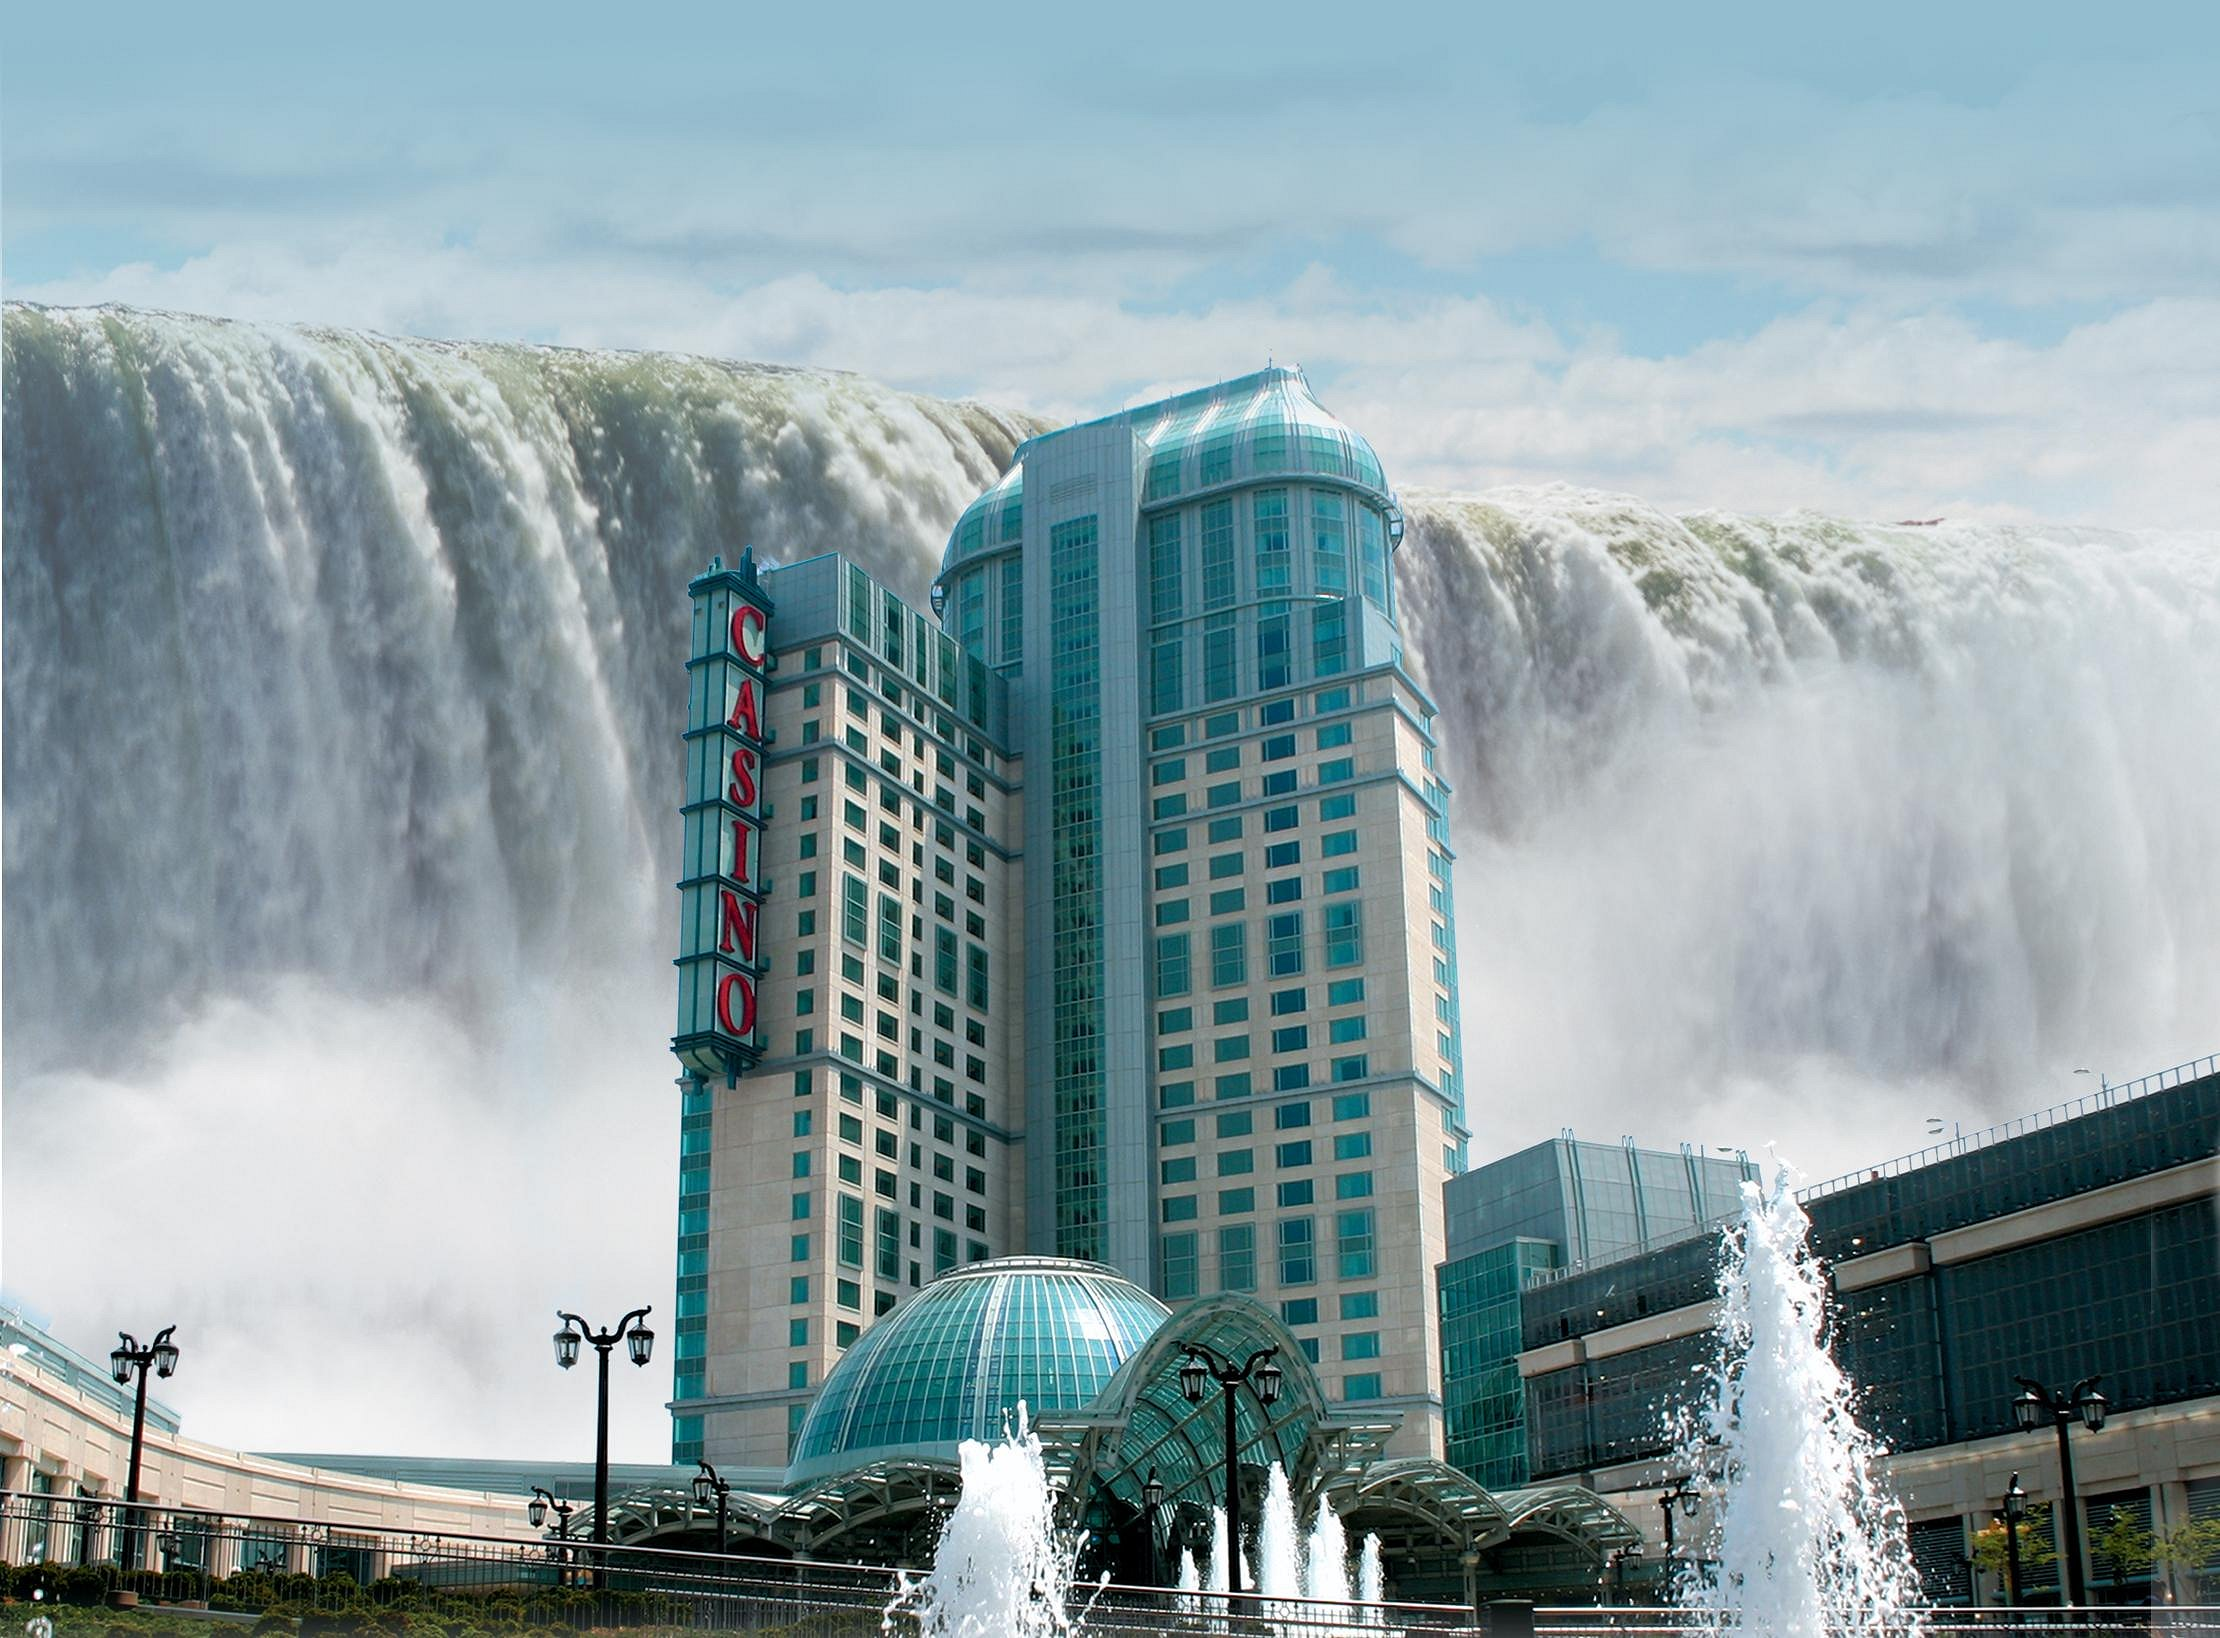 Niagara Fallsview Casino Resort Google image from http://www.niagarapeninsula.com/data/Image/casinoimage.JPG